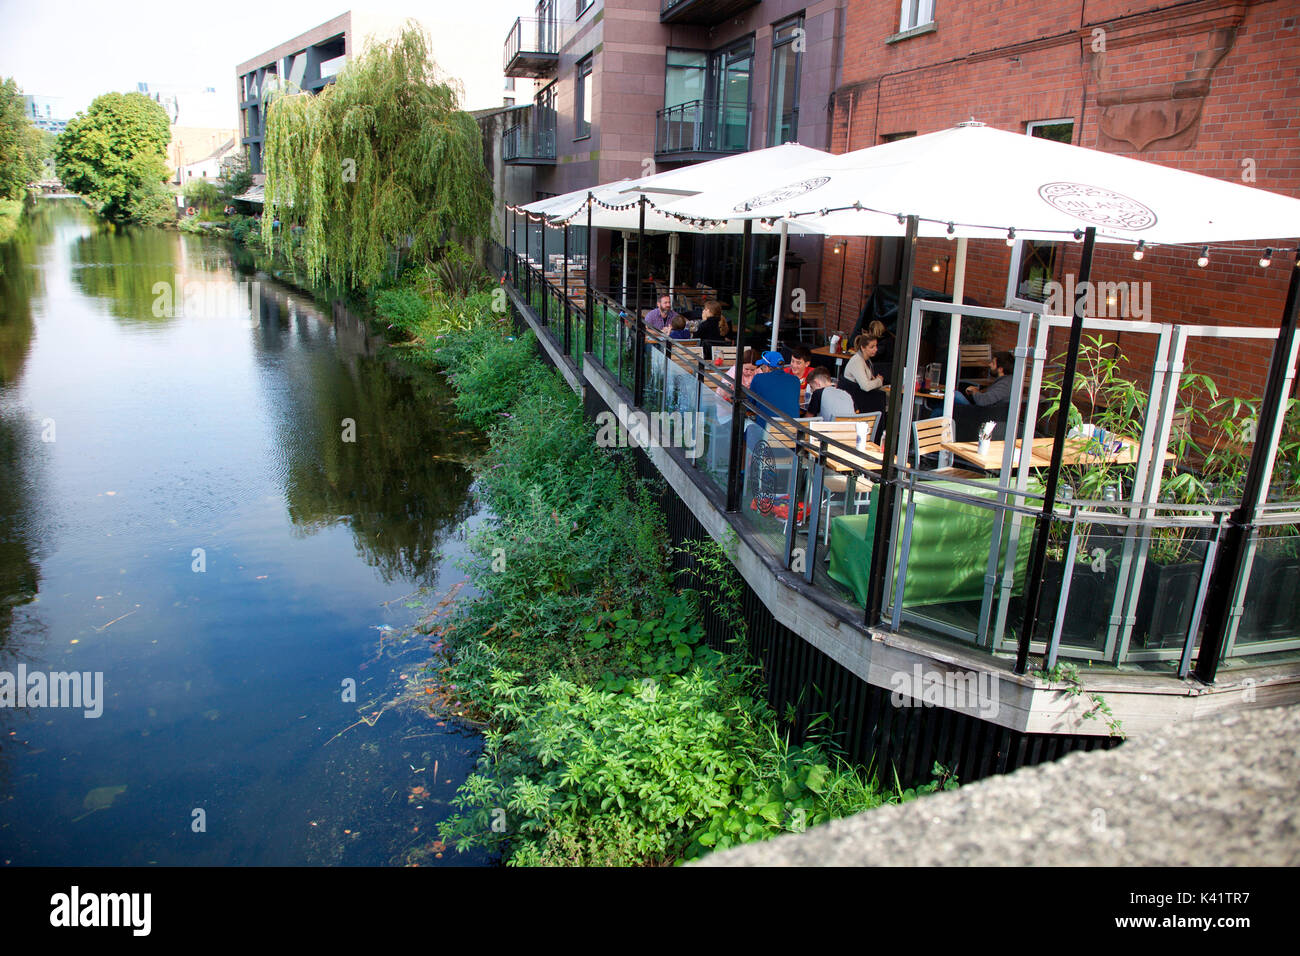 Milano, pizza restaurant on the Grand Canal, Dublin 4 - Stock Image